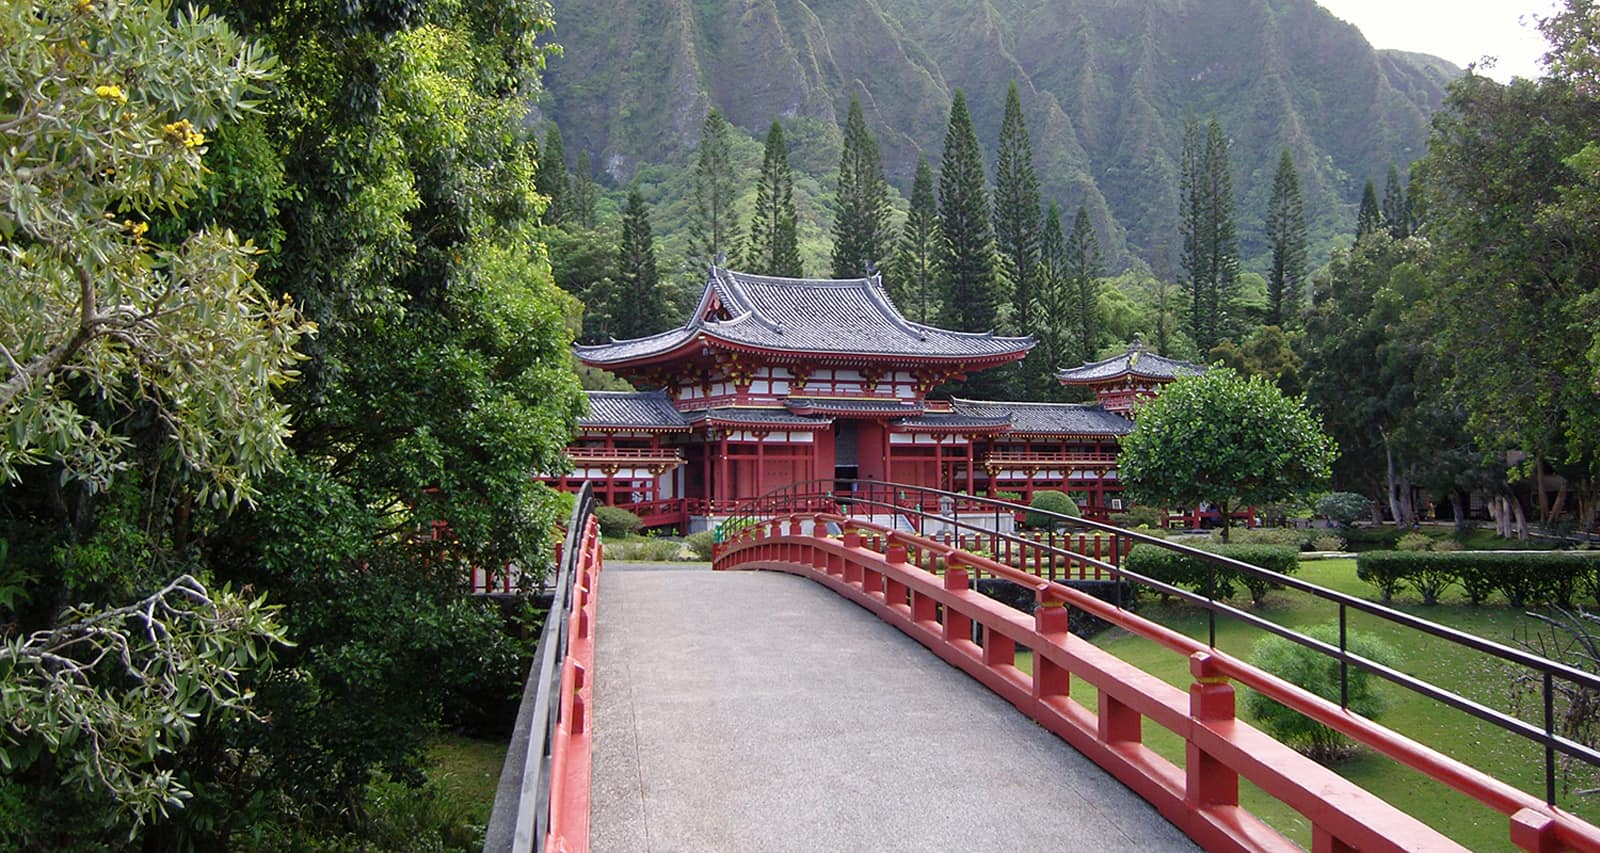 A wooden bridge leading to a temple situated in a verdant valley